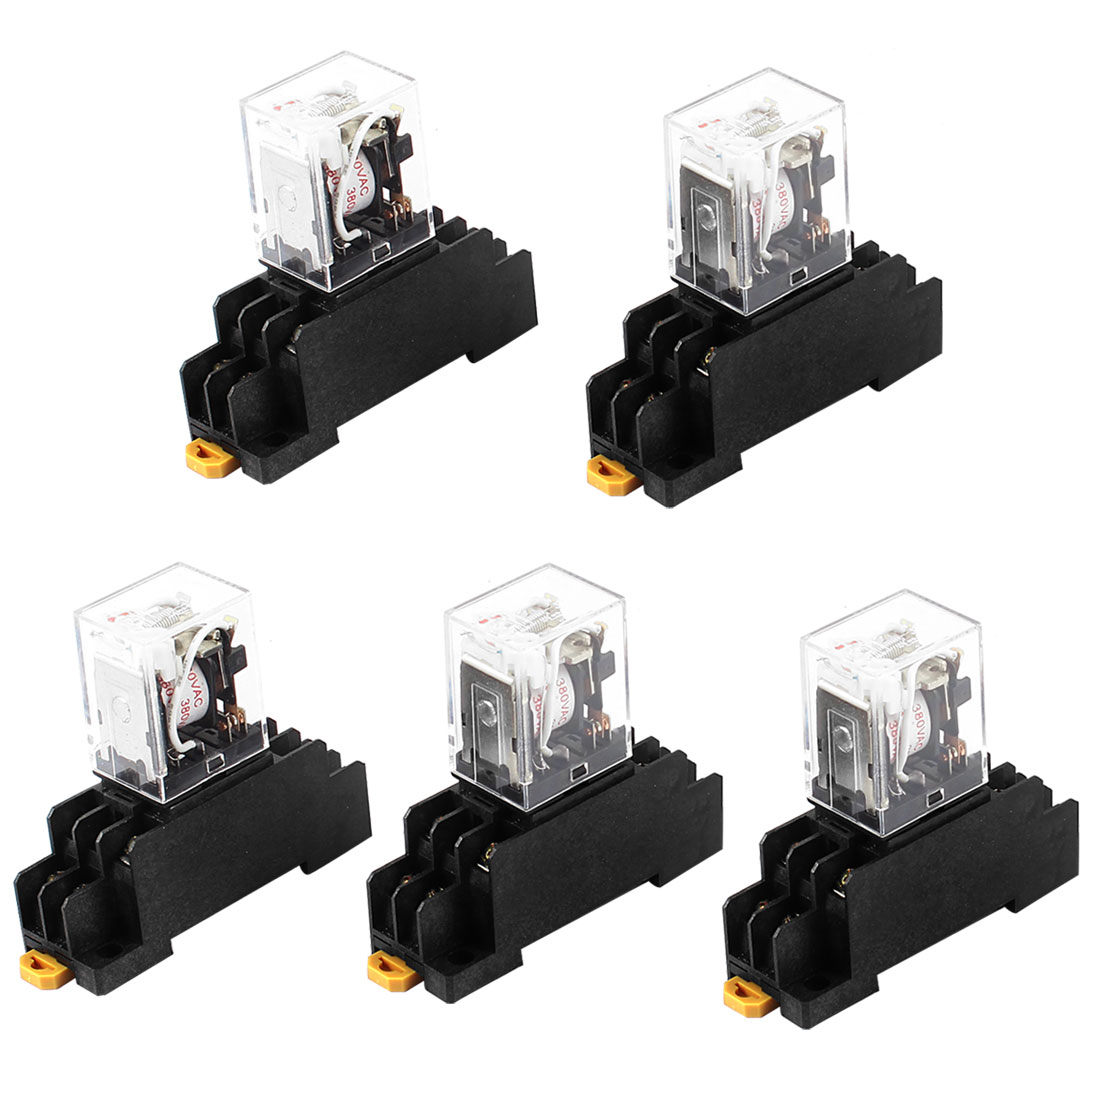 HH52PL AC 380V Coil DPDT 8Pin 35mm DIN Rail Electromagnetic Power Relay 5 Pcs